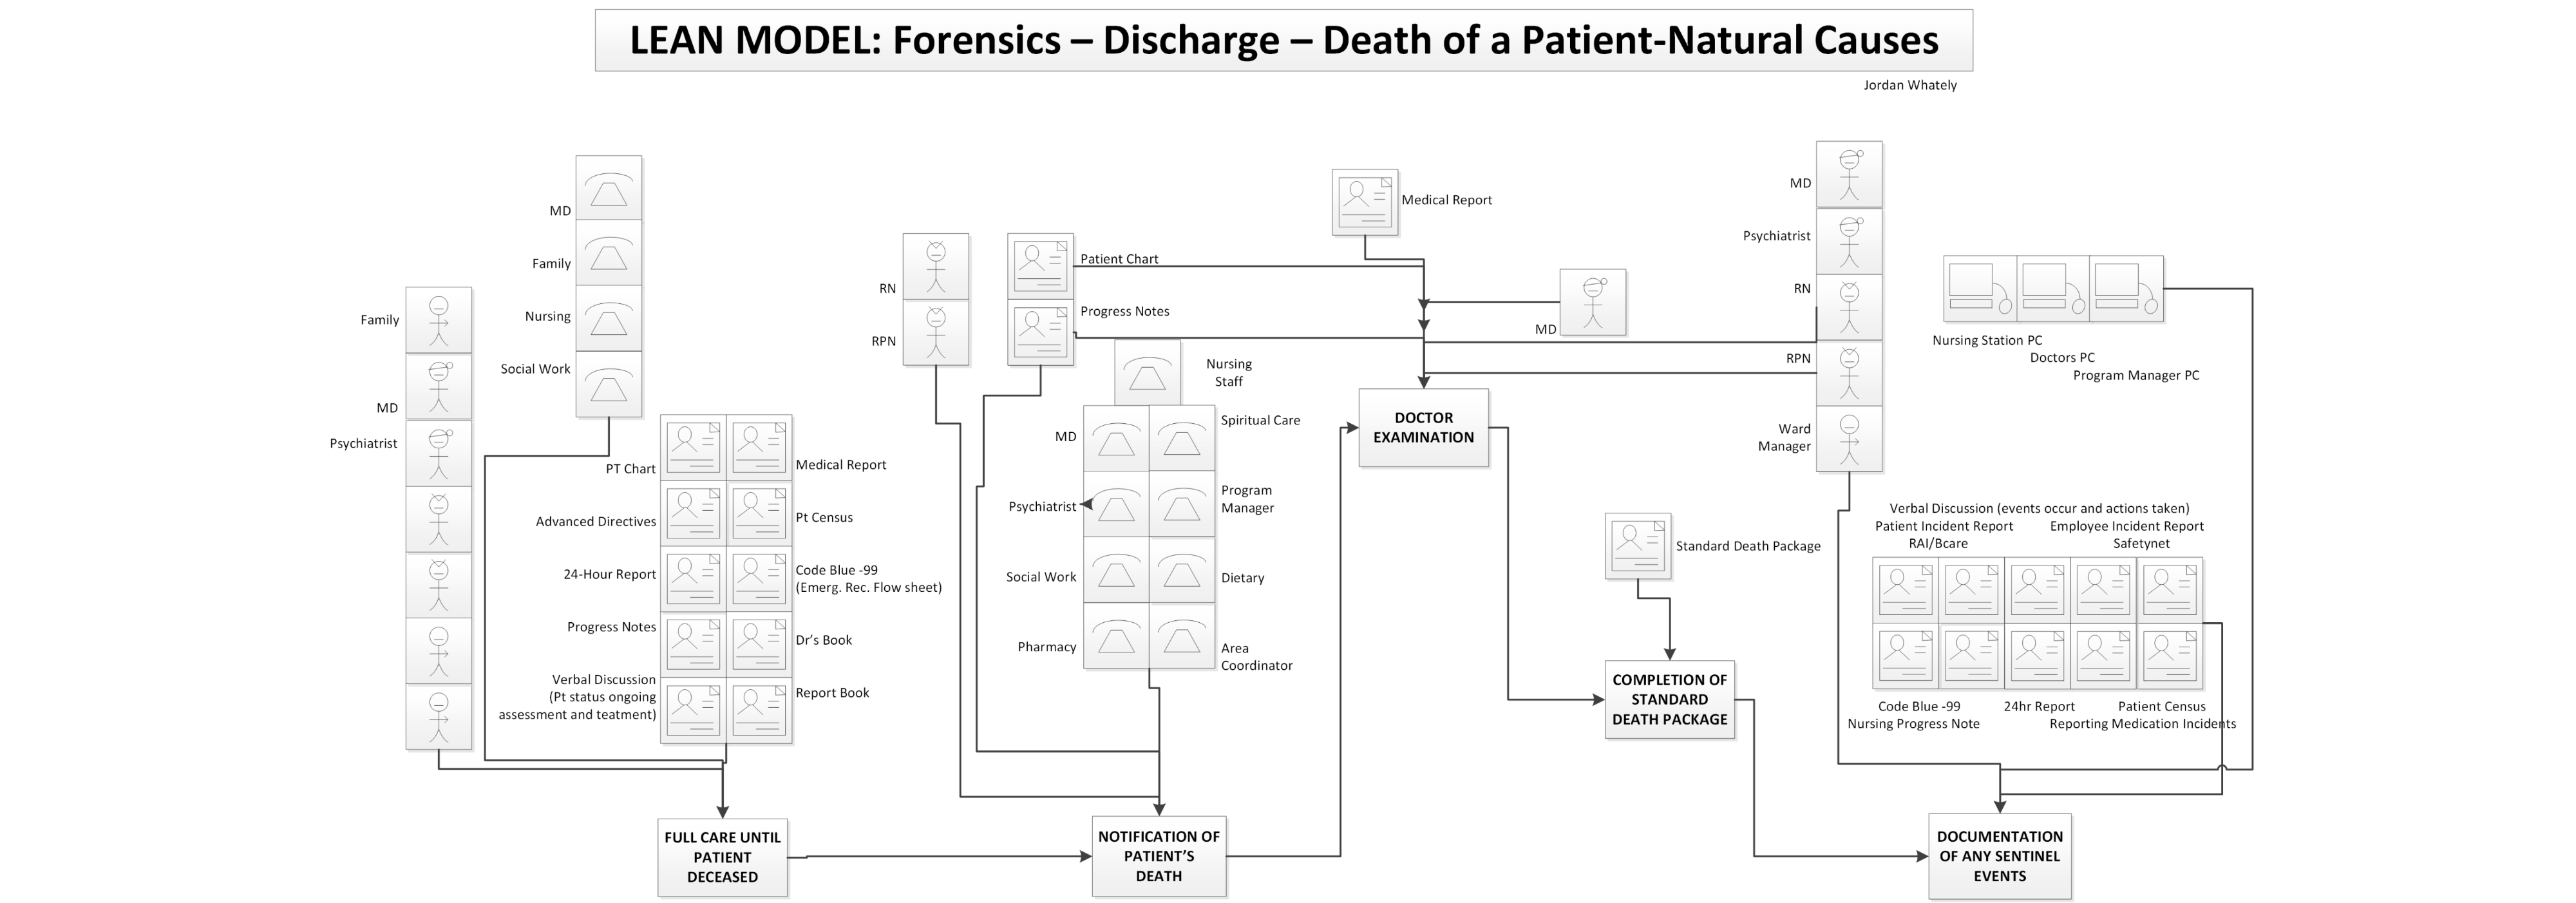 Jhf an evaluation of understandability of patient journey models lean value stream map of forensic unit discharge process nvjuhfo Images